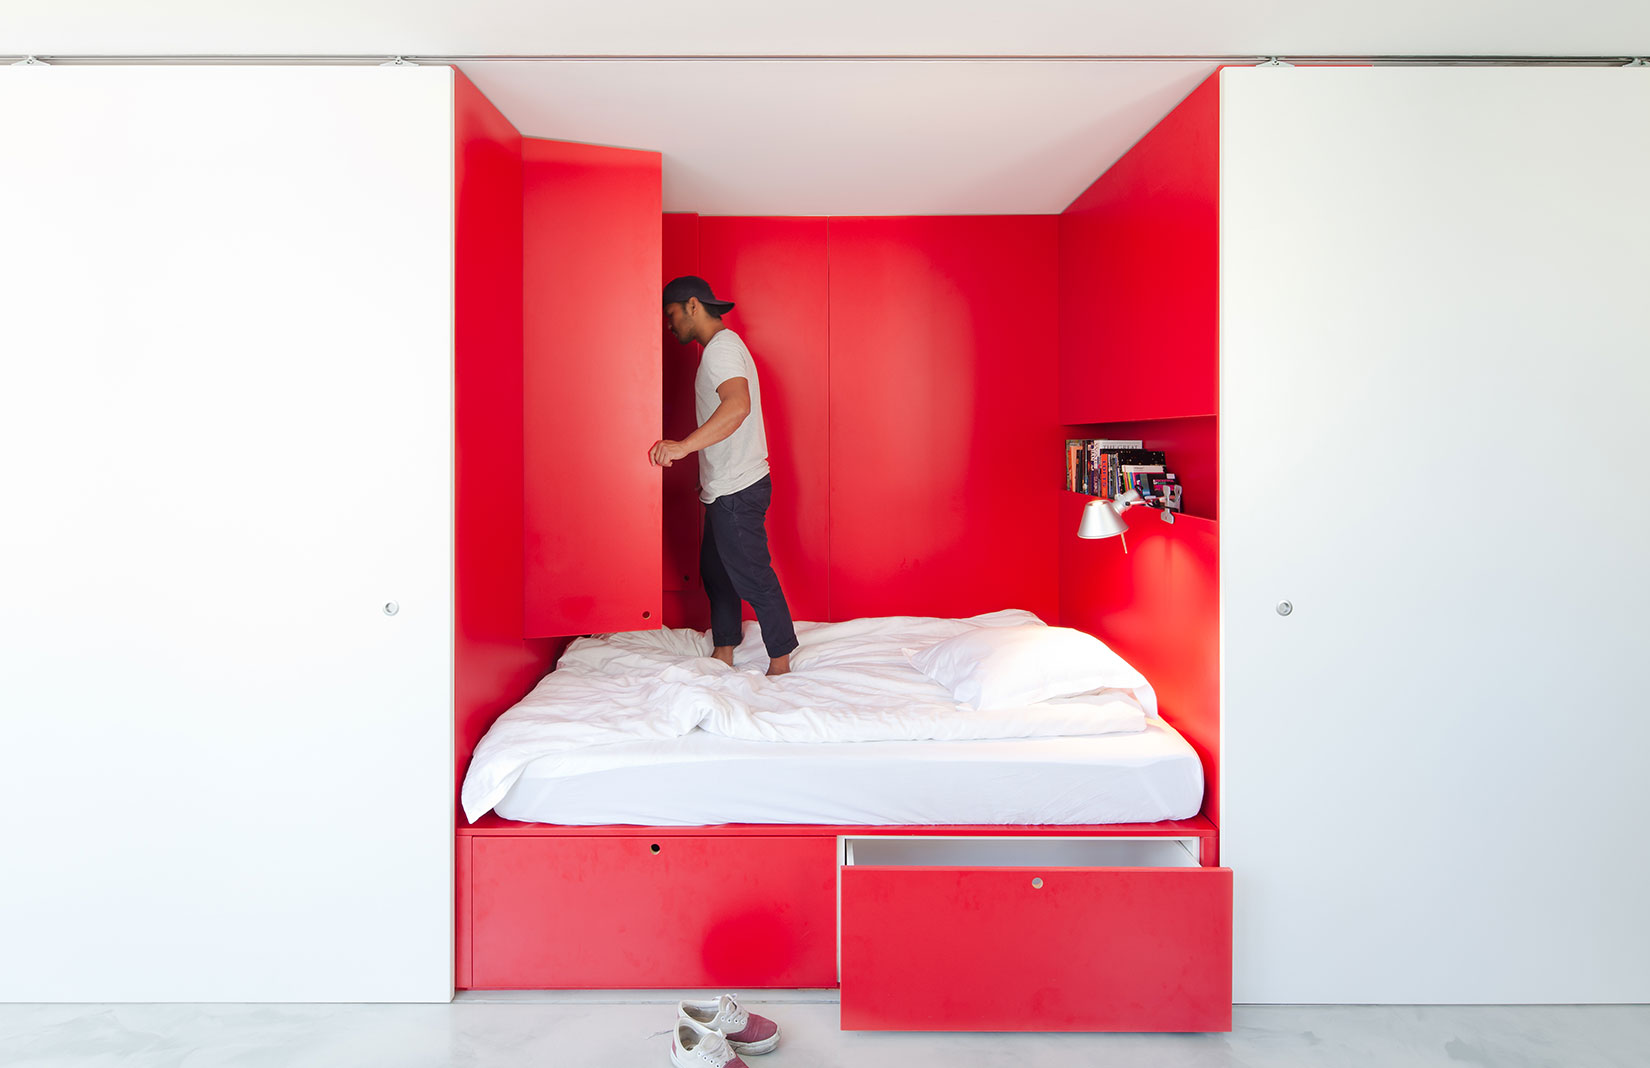 Micro apartment designed by Nichola Gurney